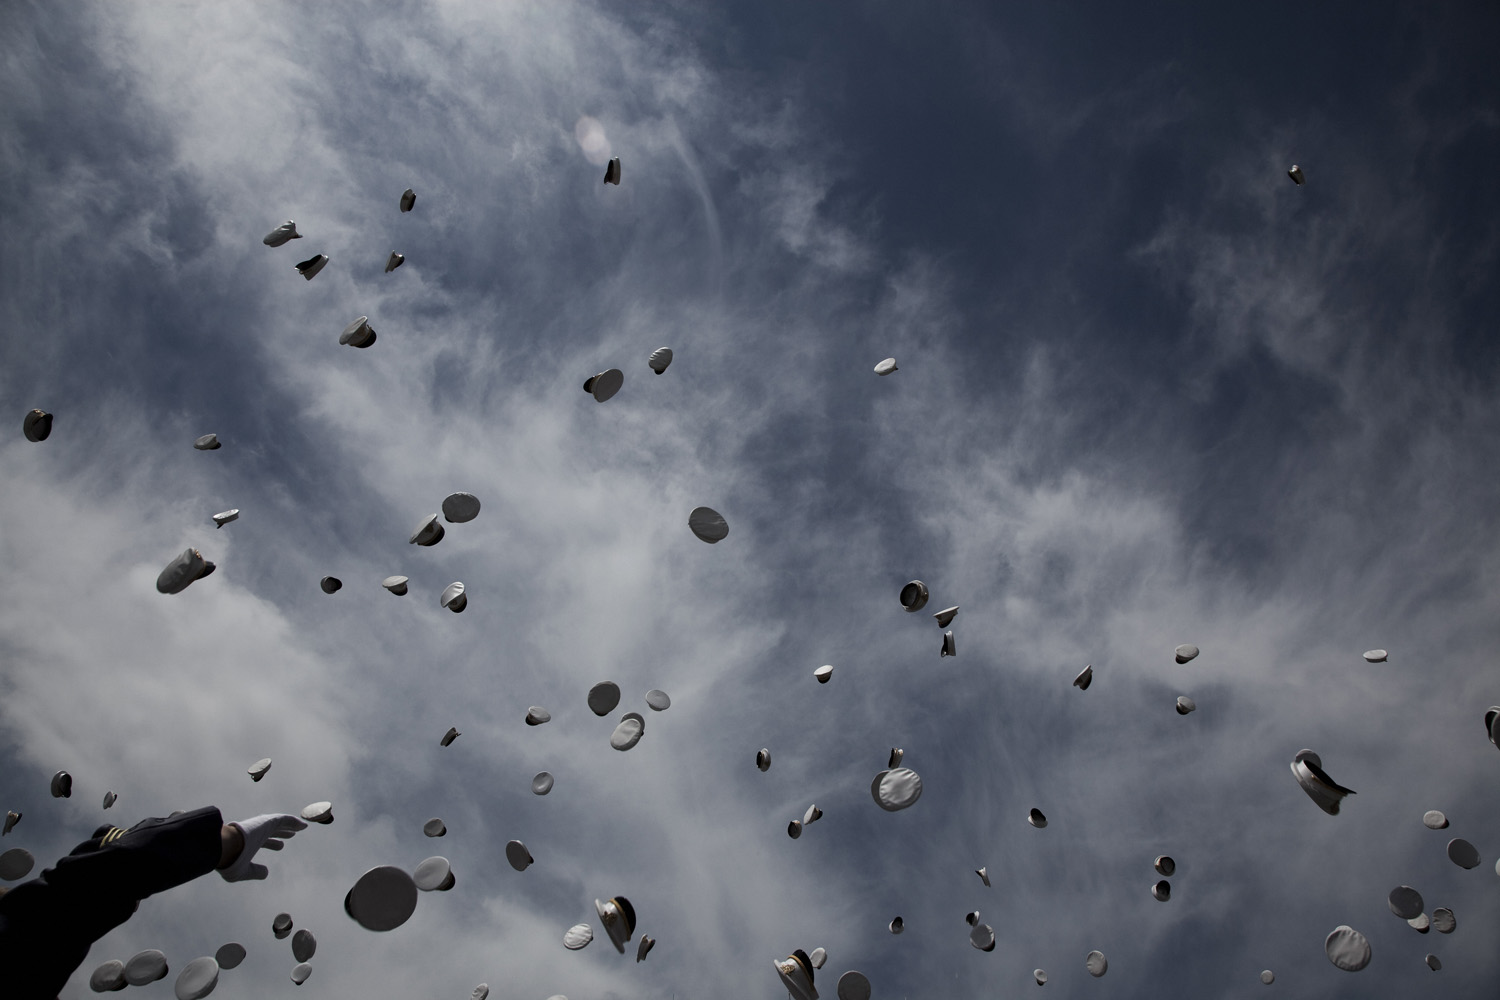 May 21, 2011. A view from the United States Military Academy's commencement in West Point, N.Y.